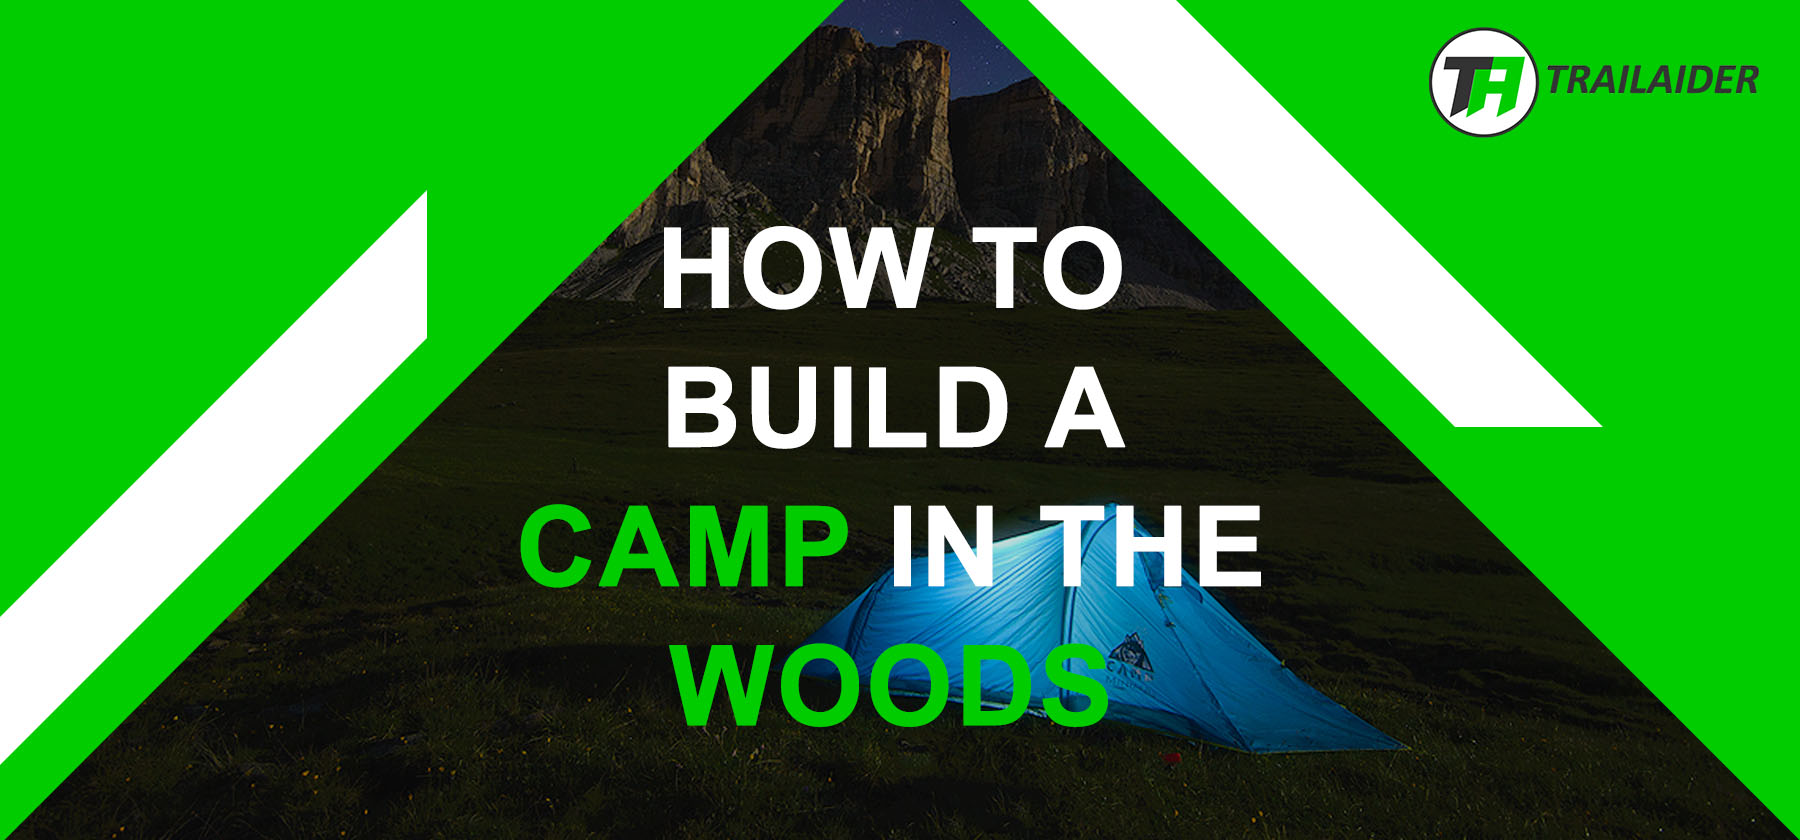 How to build a camp in the woods